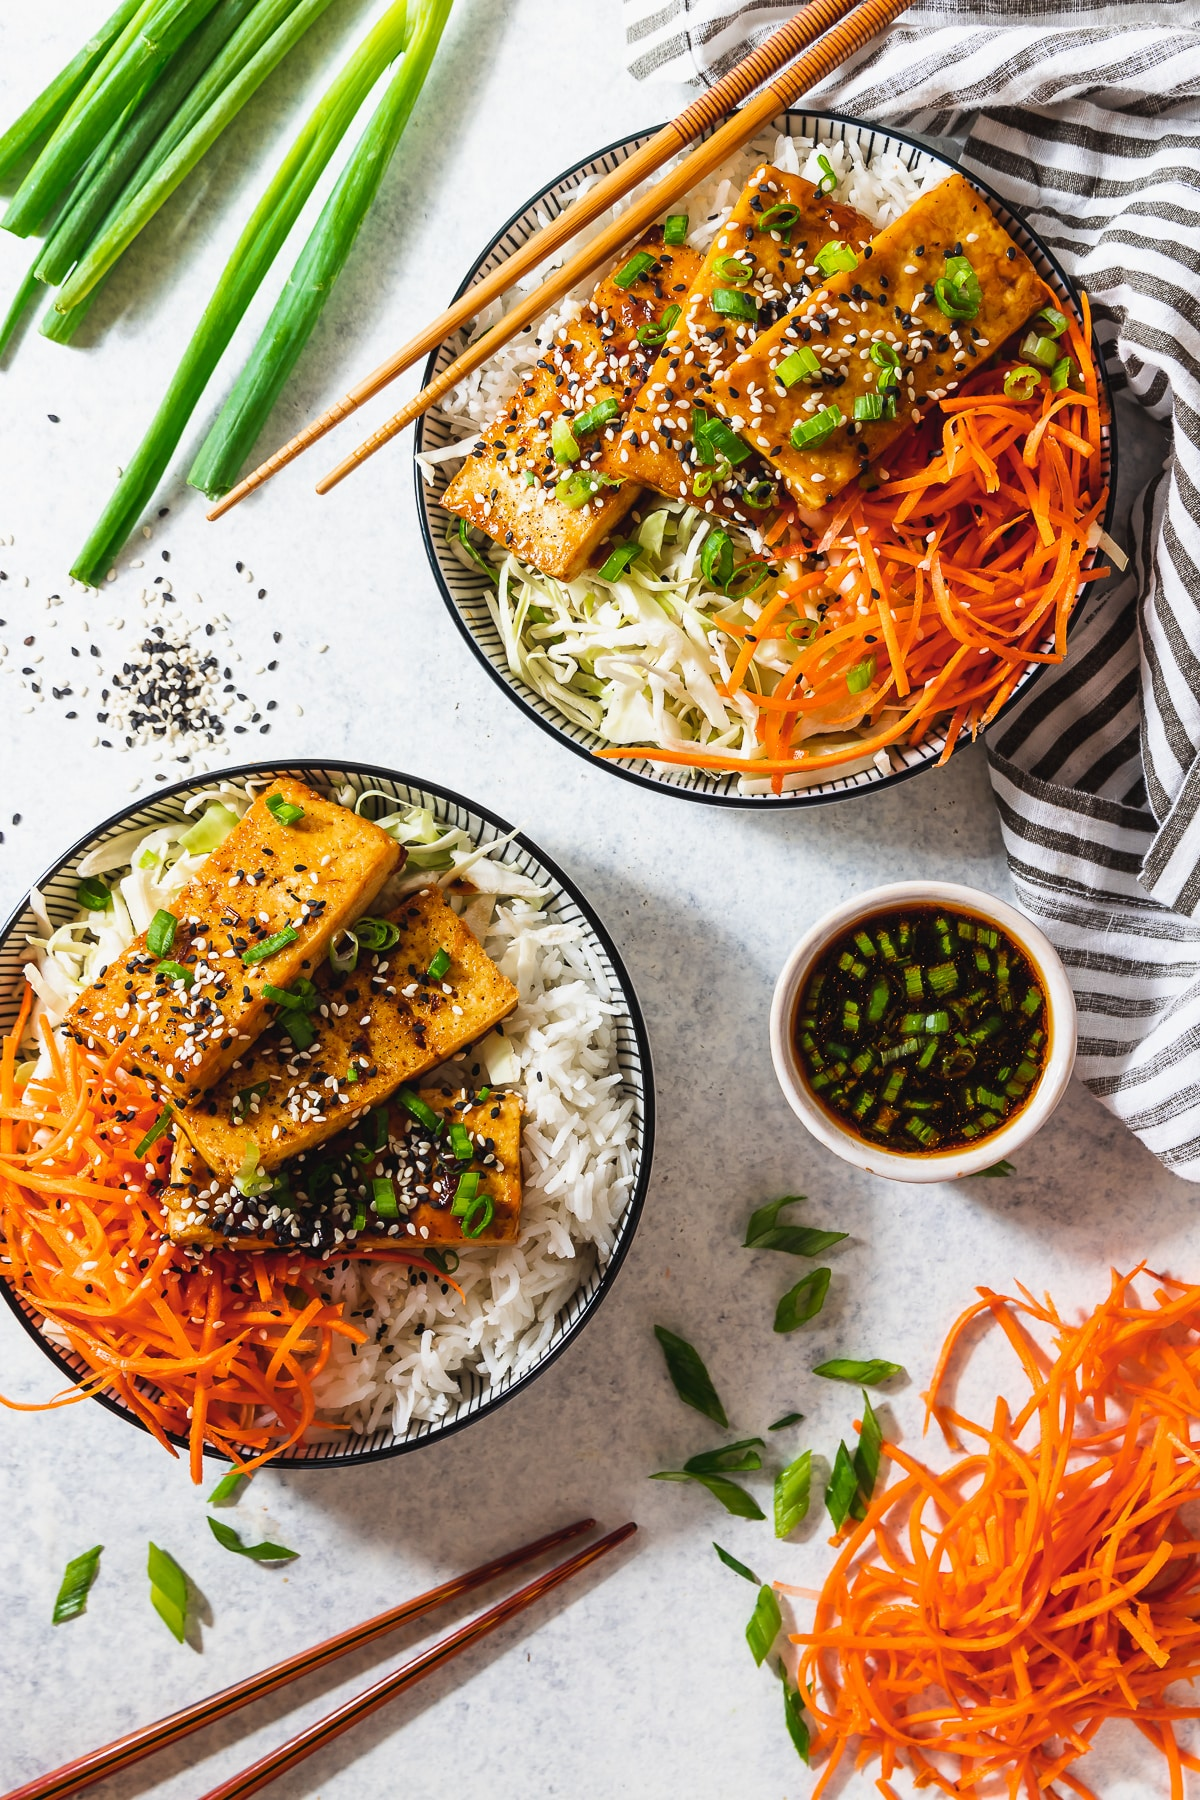 sesame tofu bowls with sauce, napkin and chopsticks